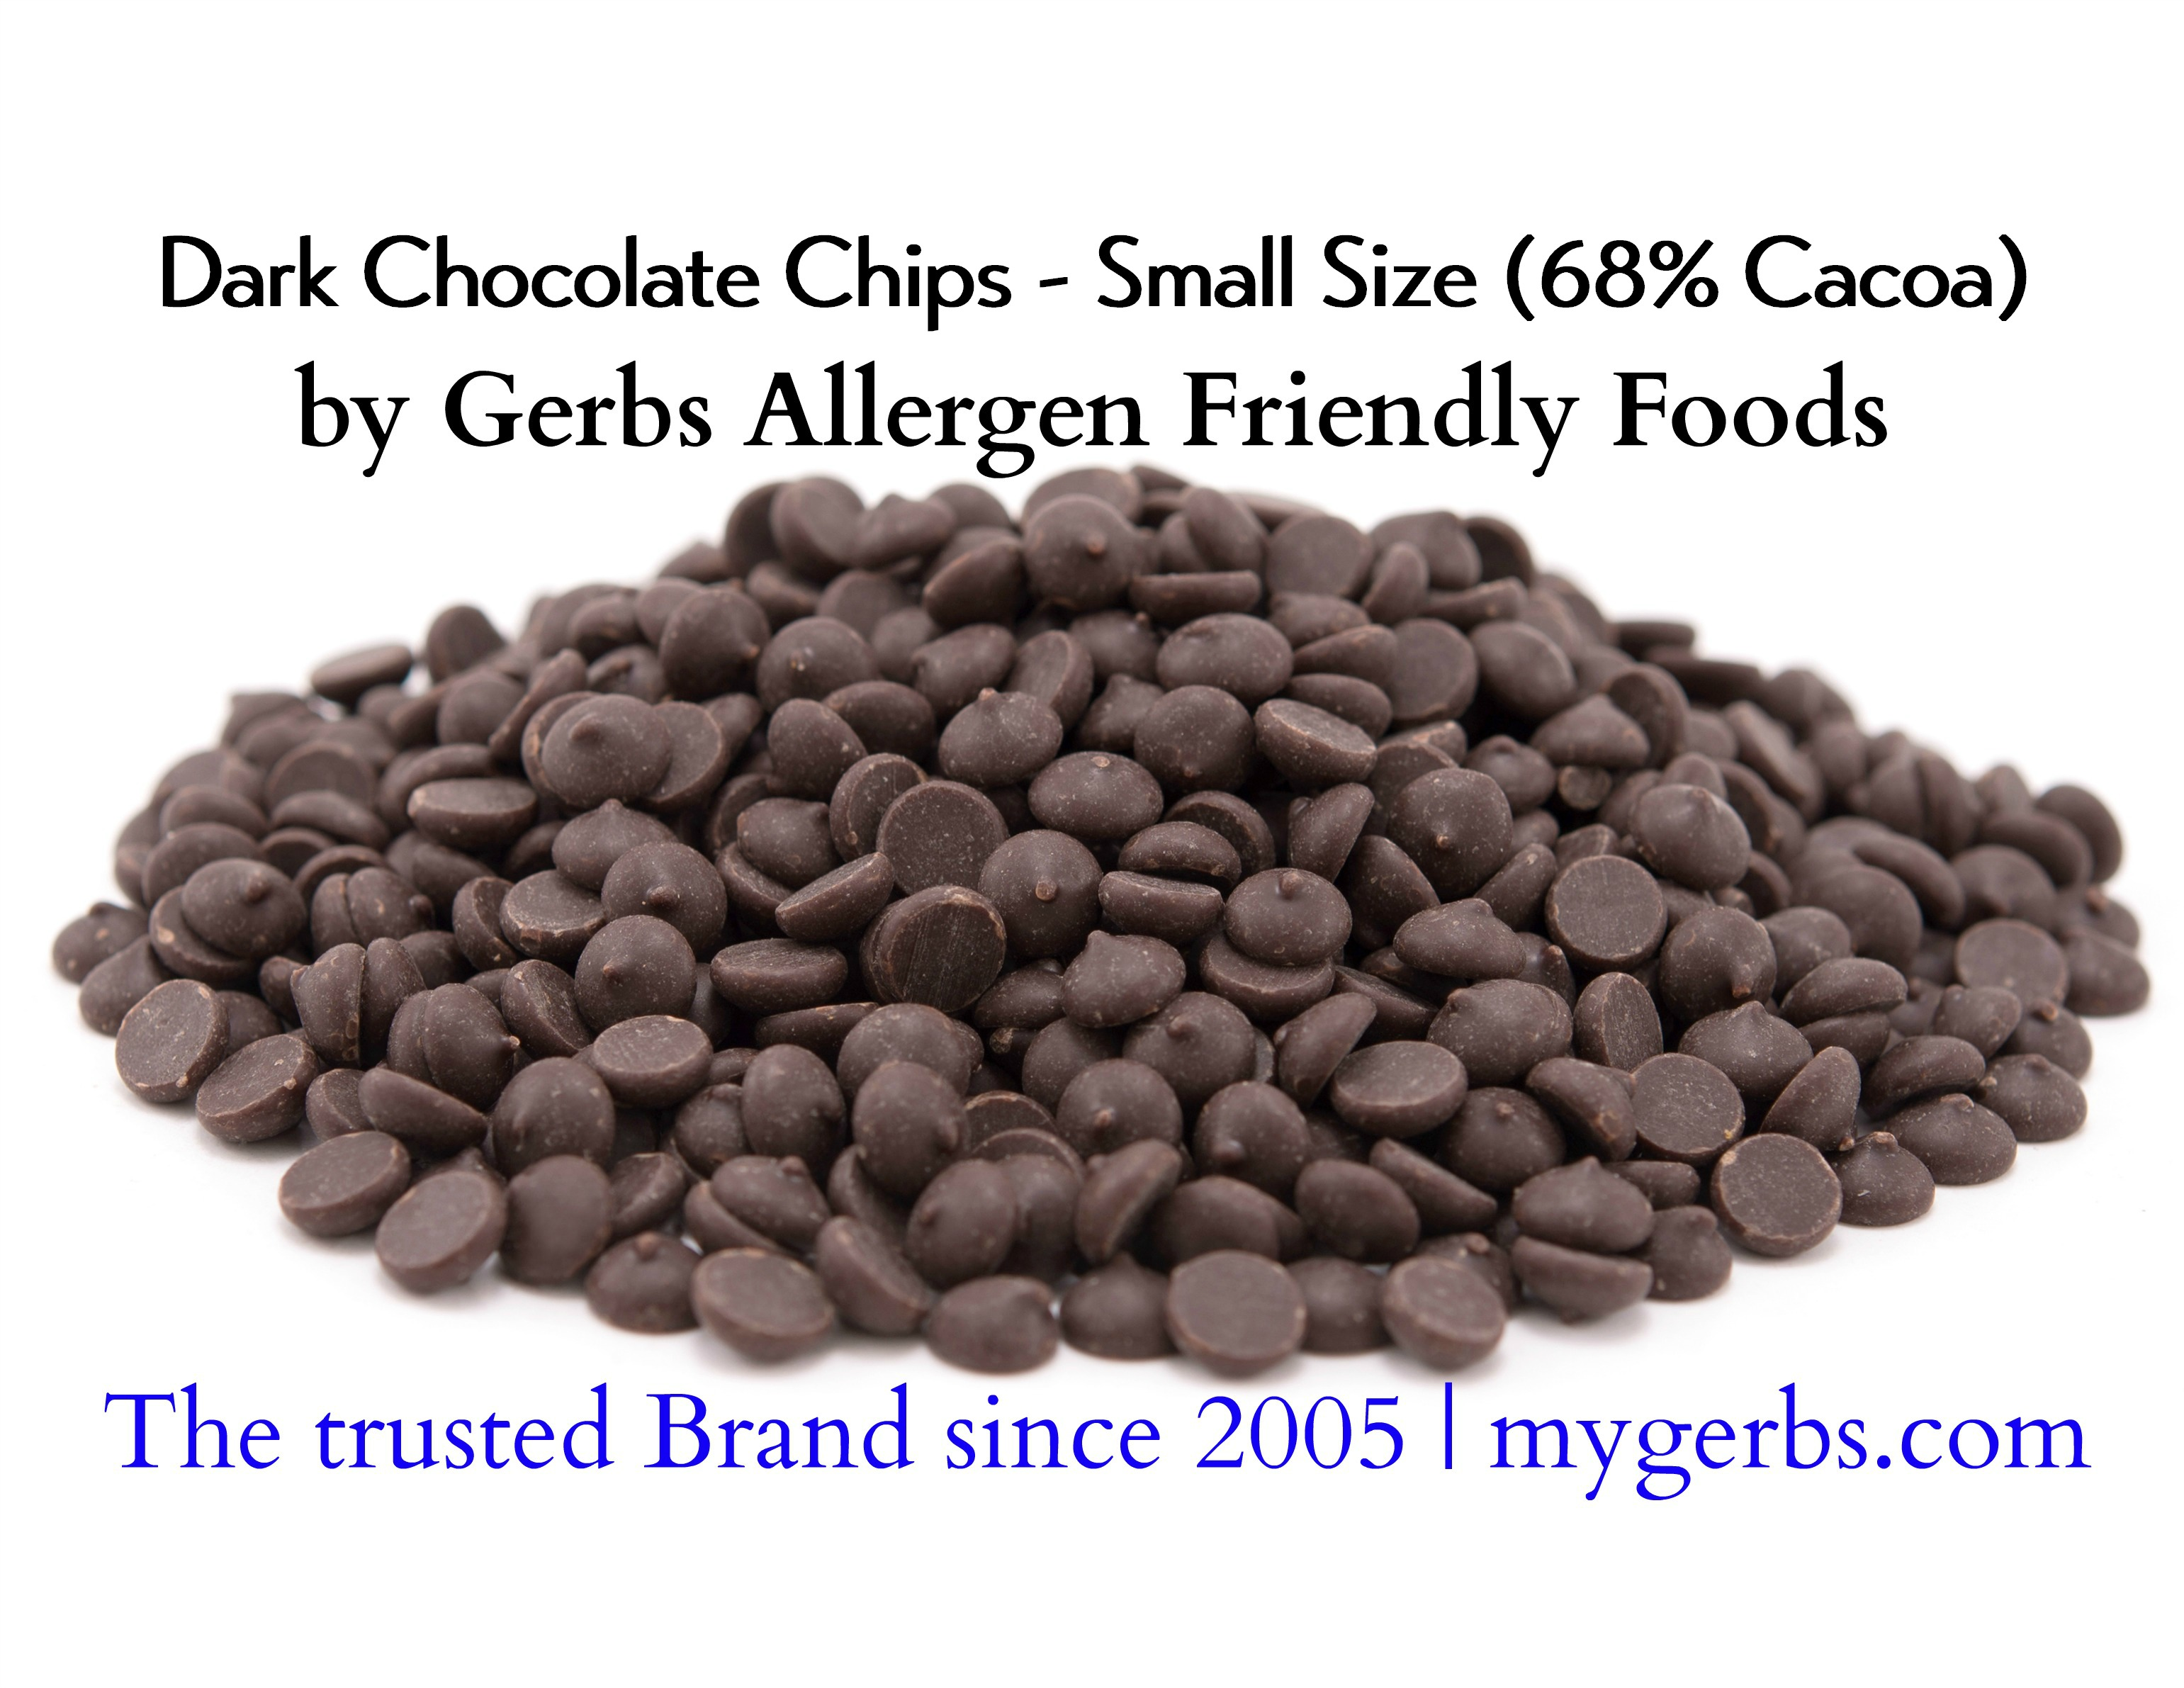 Dark Chocolate Chips (68% Cacao) by Gerbs - 2 LBS - Top 12 Food ...